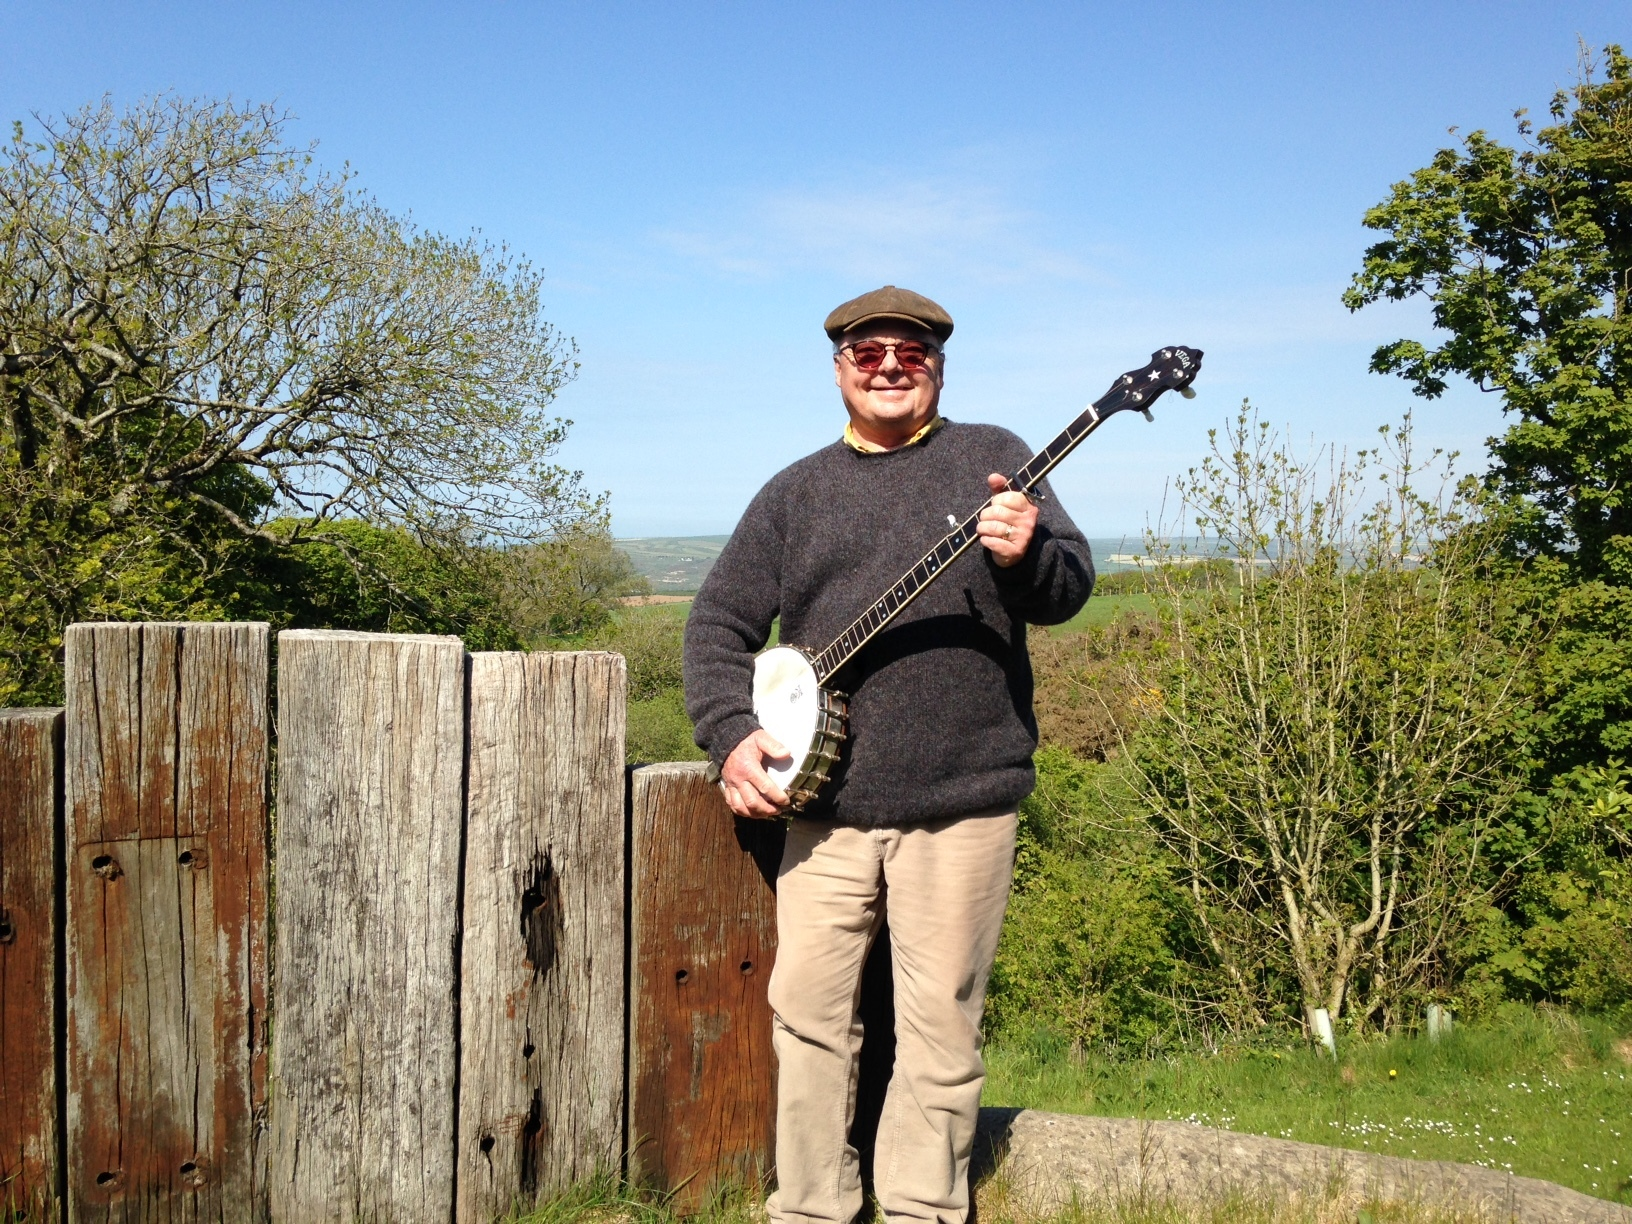 John Rees has recorded his first CD at the age of 70